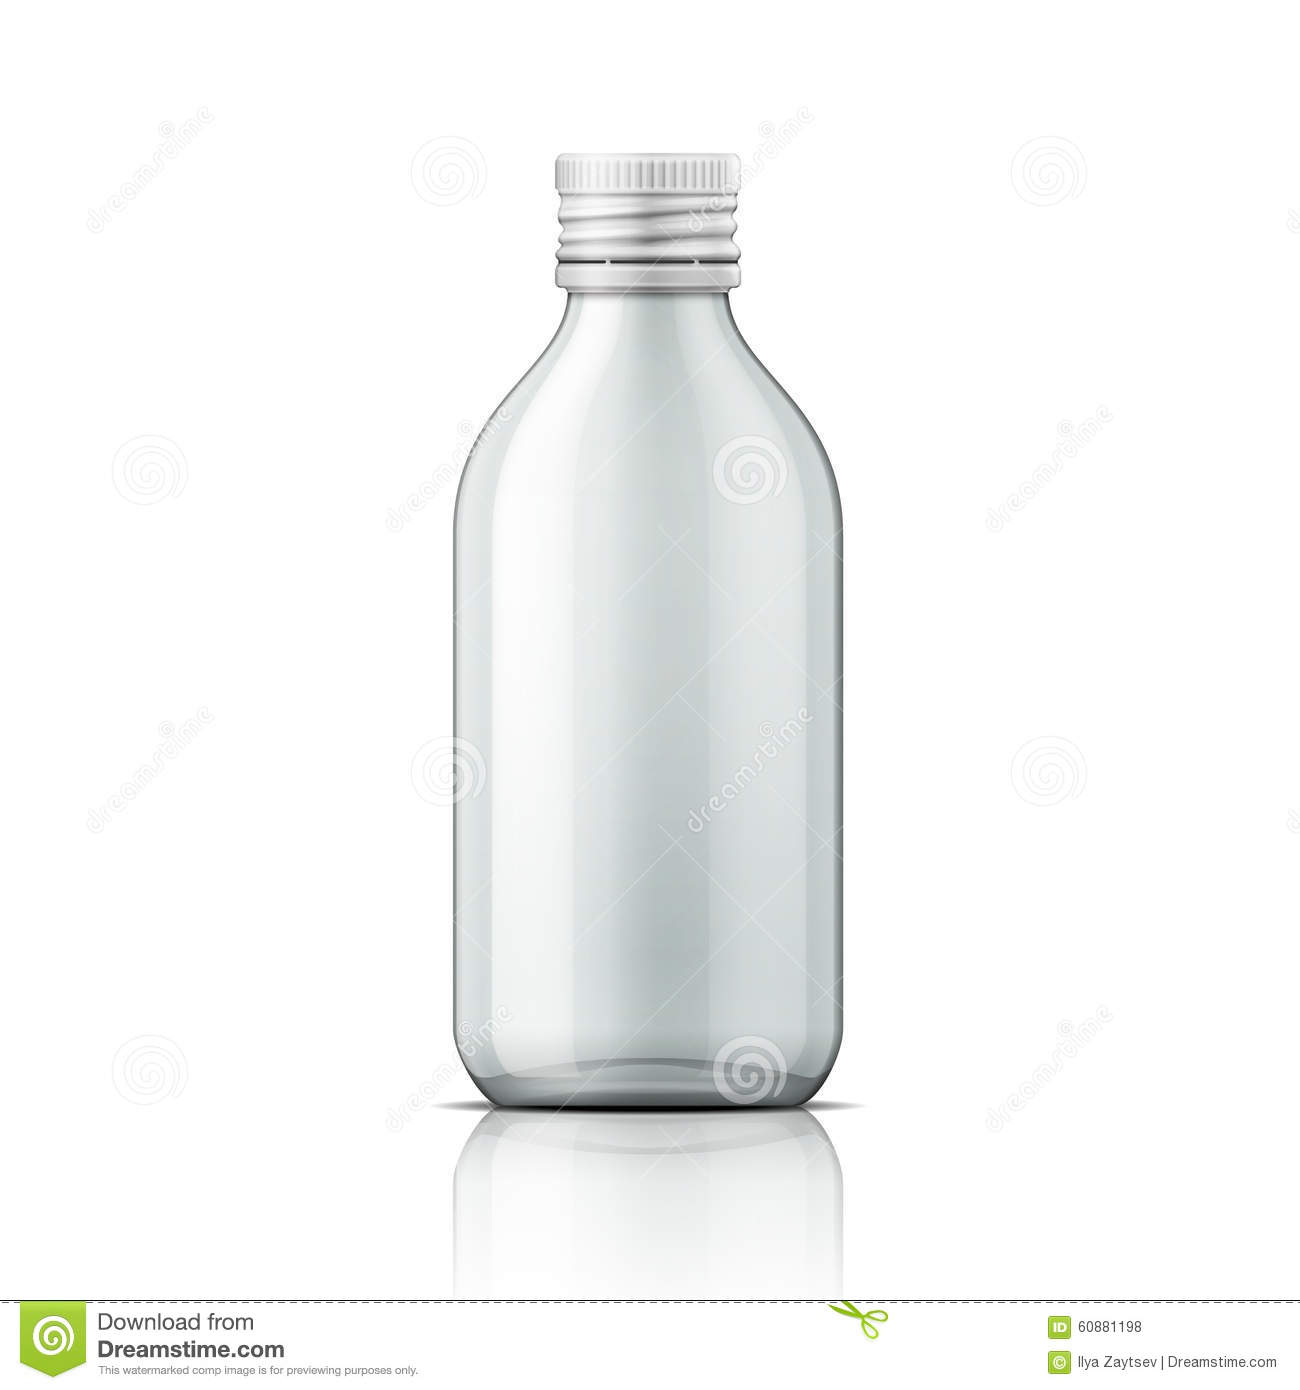 glass medical bottle with cap stock vector illustration of